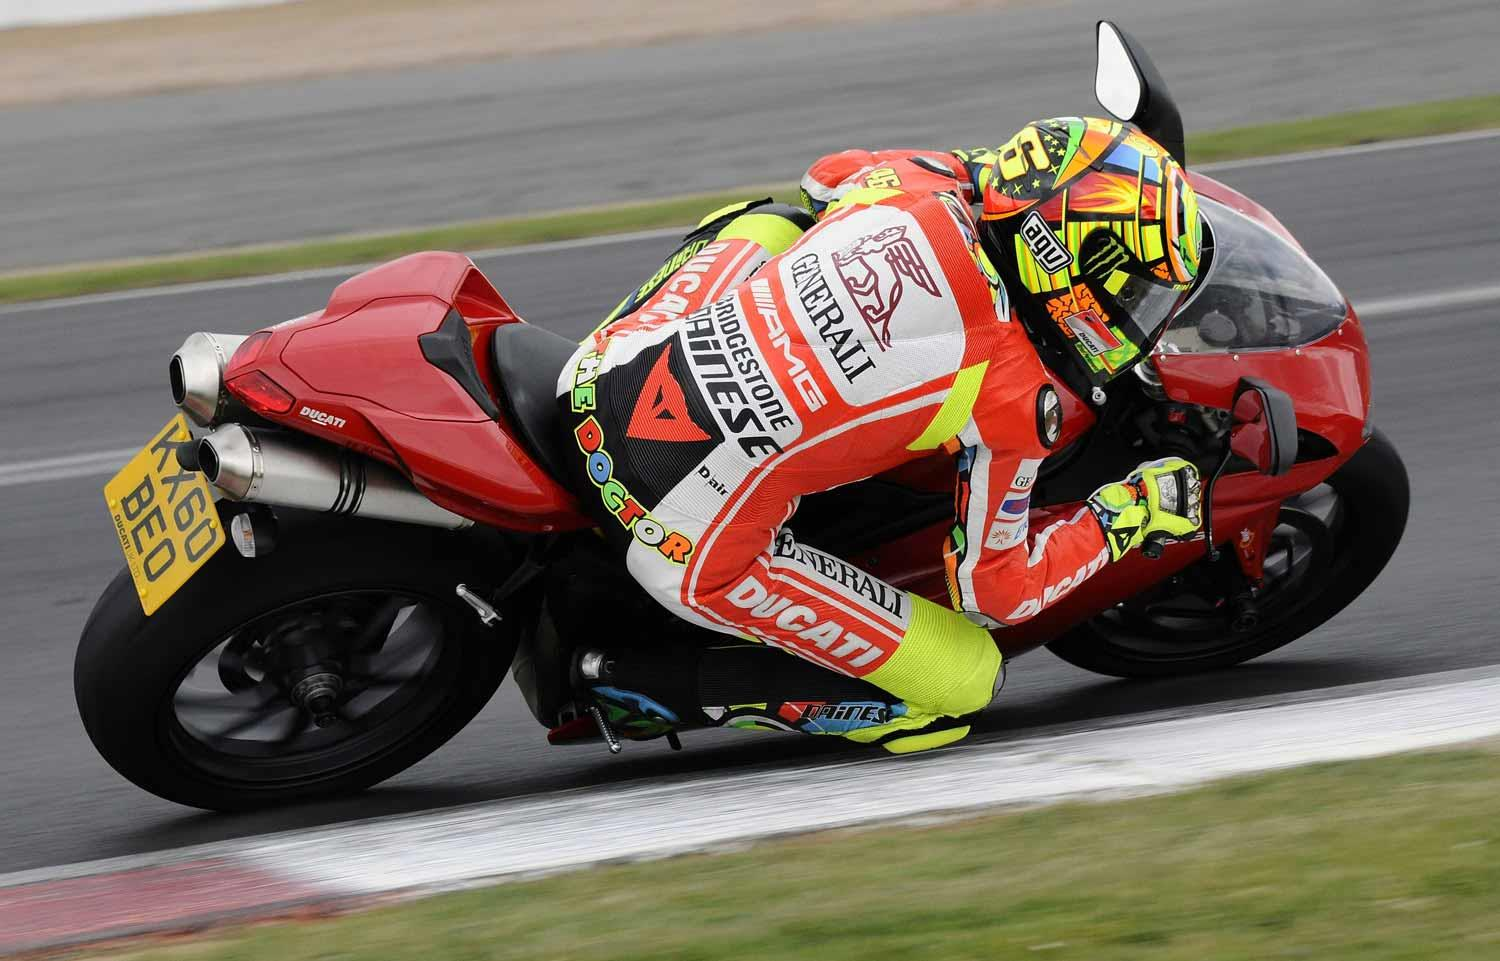 Ducati 1198 in action at the hands of Valentino Rossi